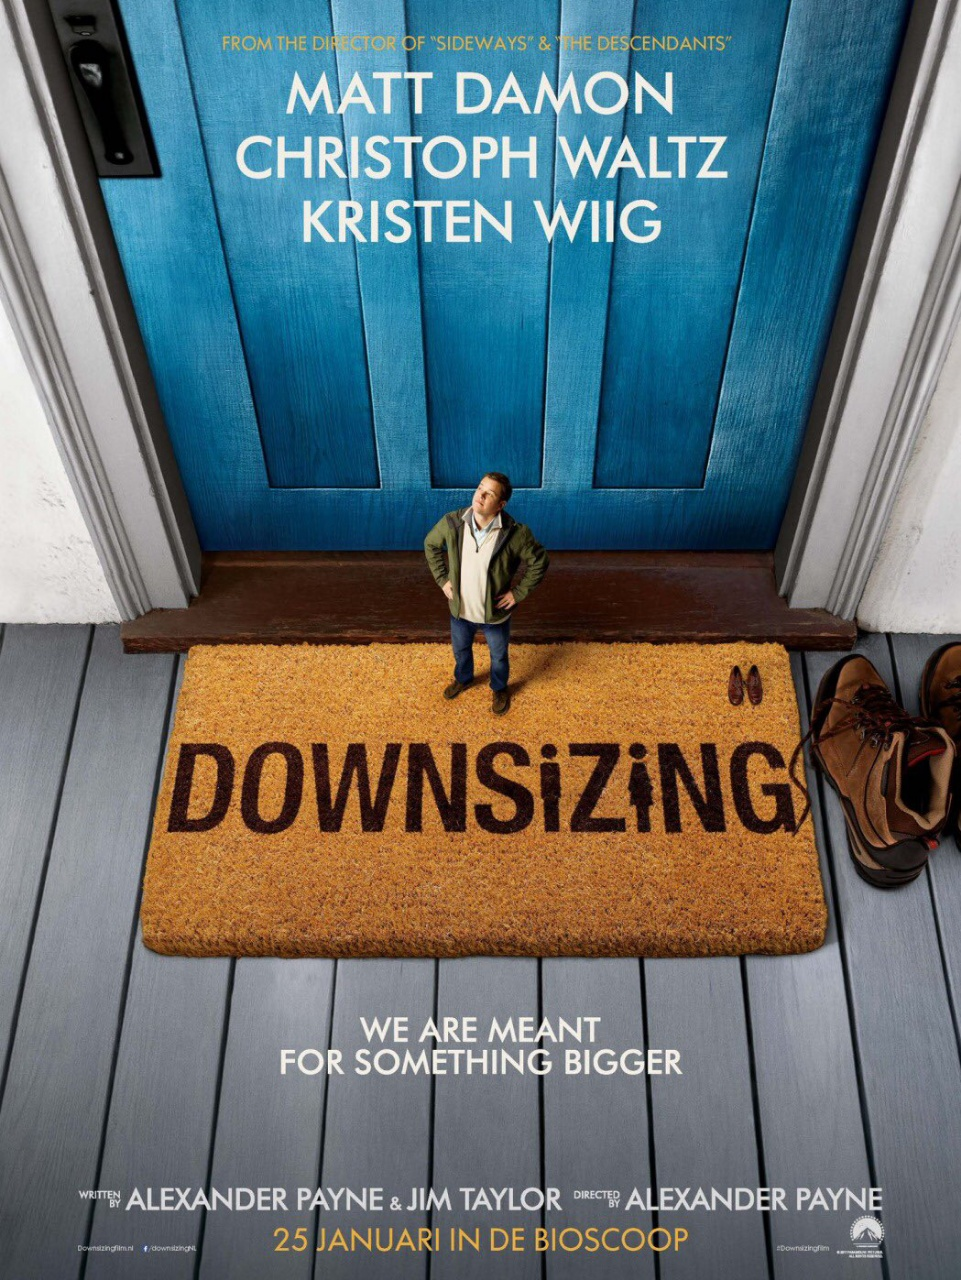 Downsizing-movie-poster-1.jpg